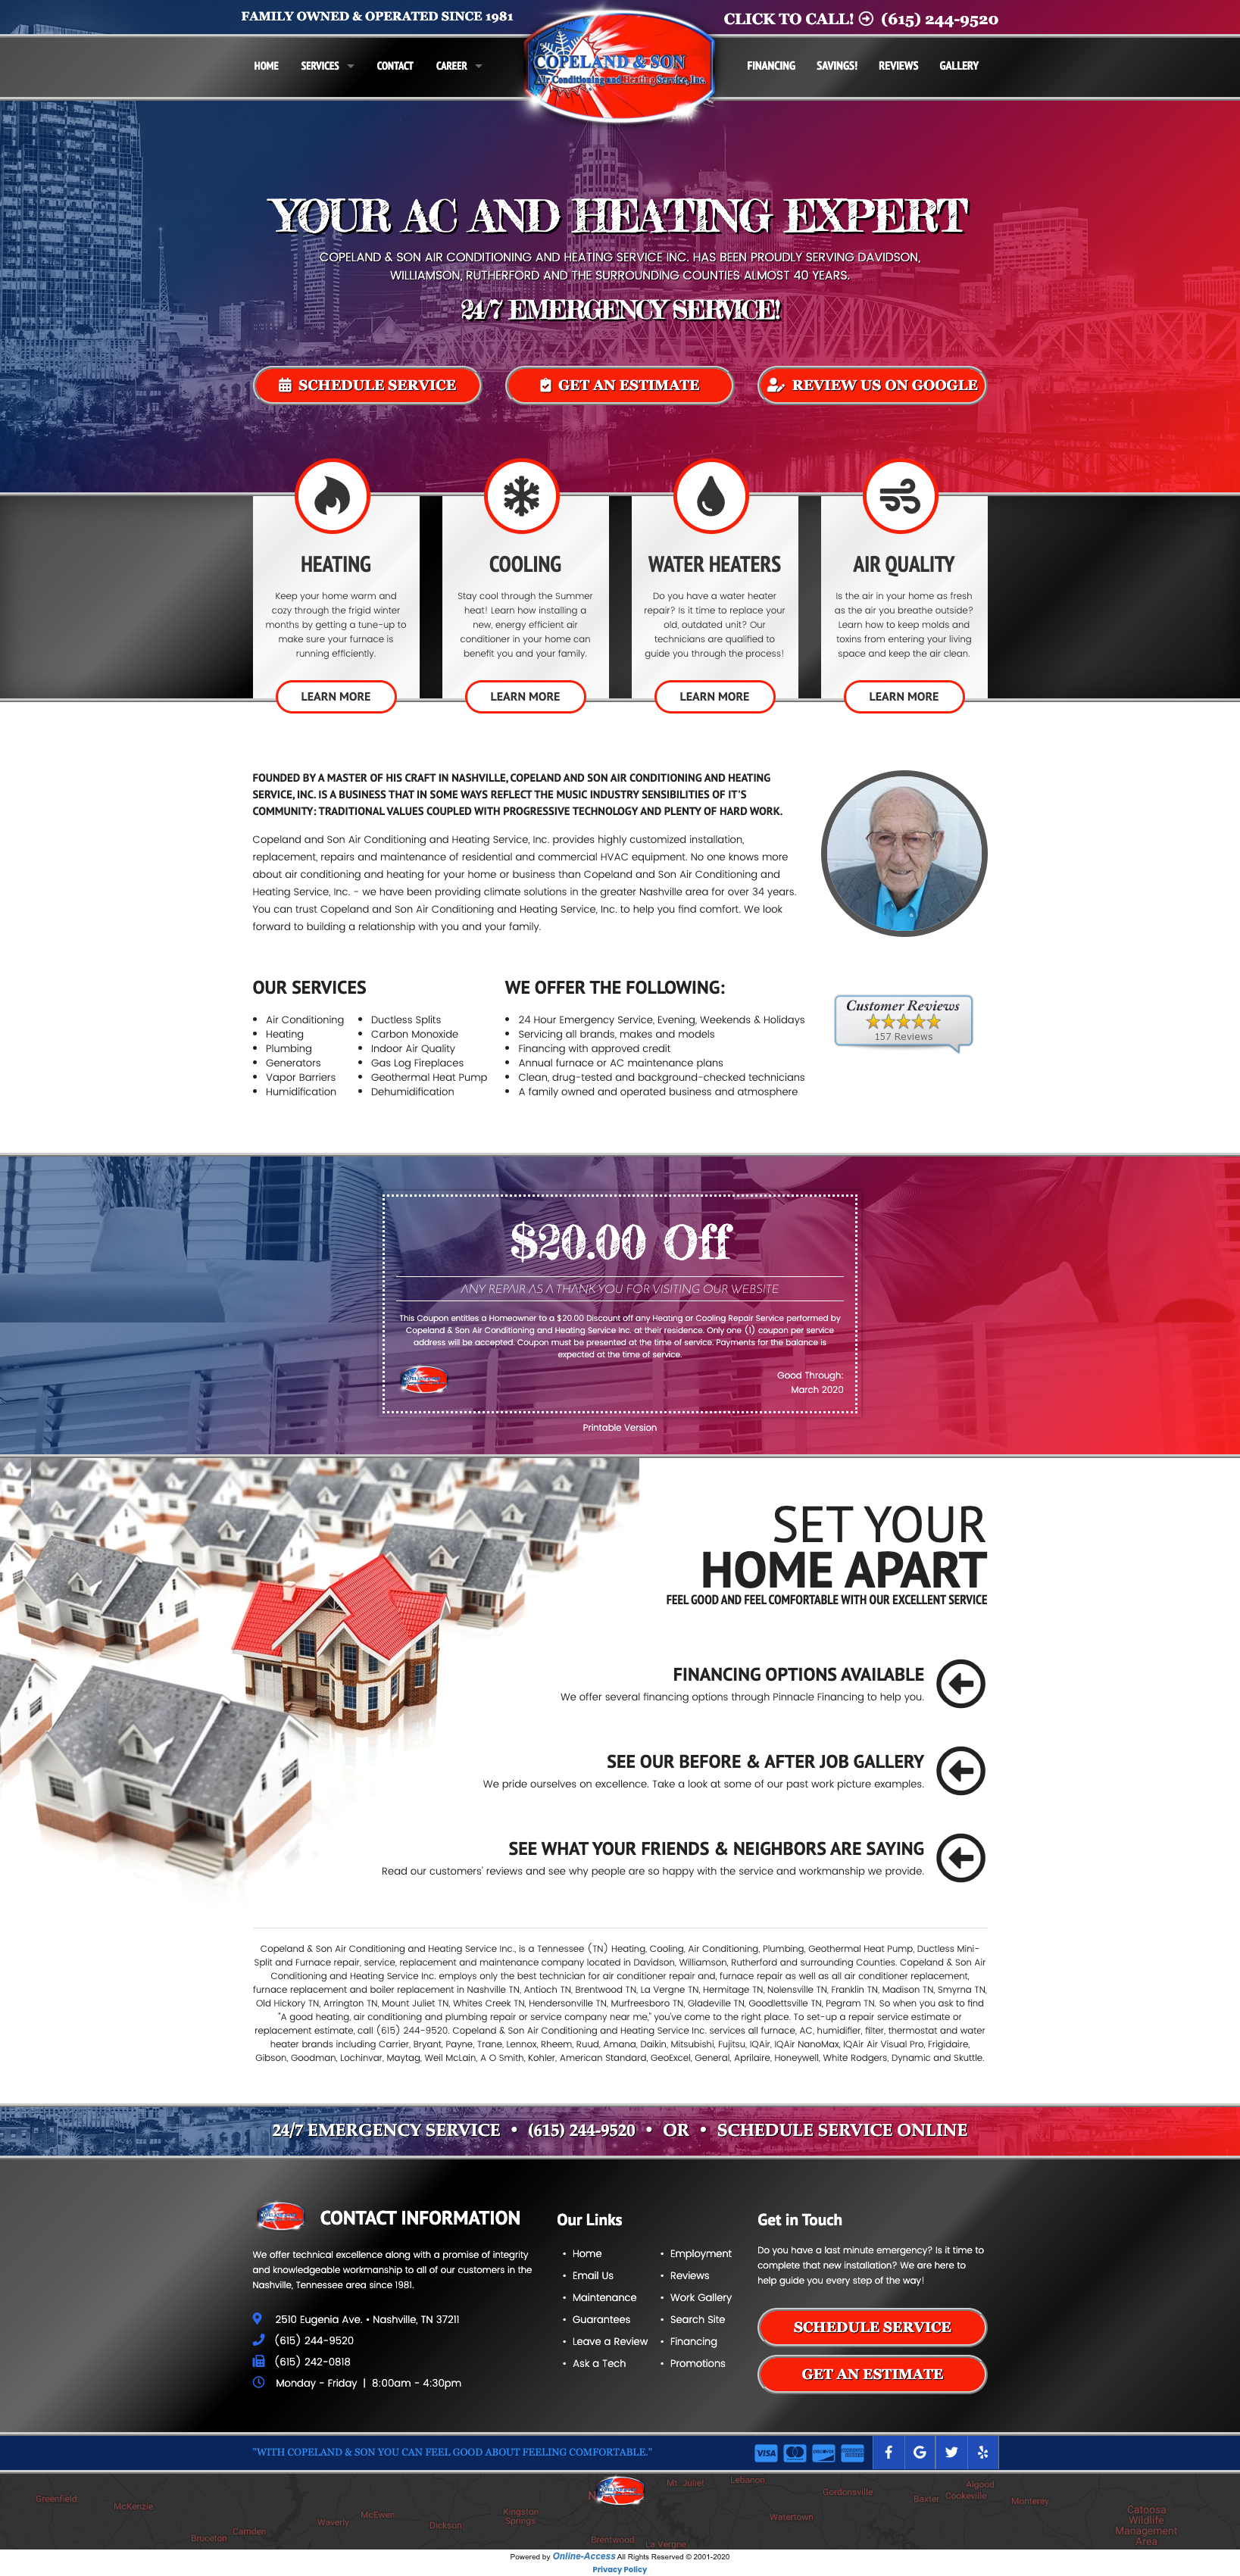 Branded Heating And Air Conditioning Website Design In 2020 With